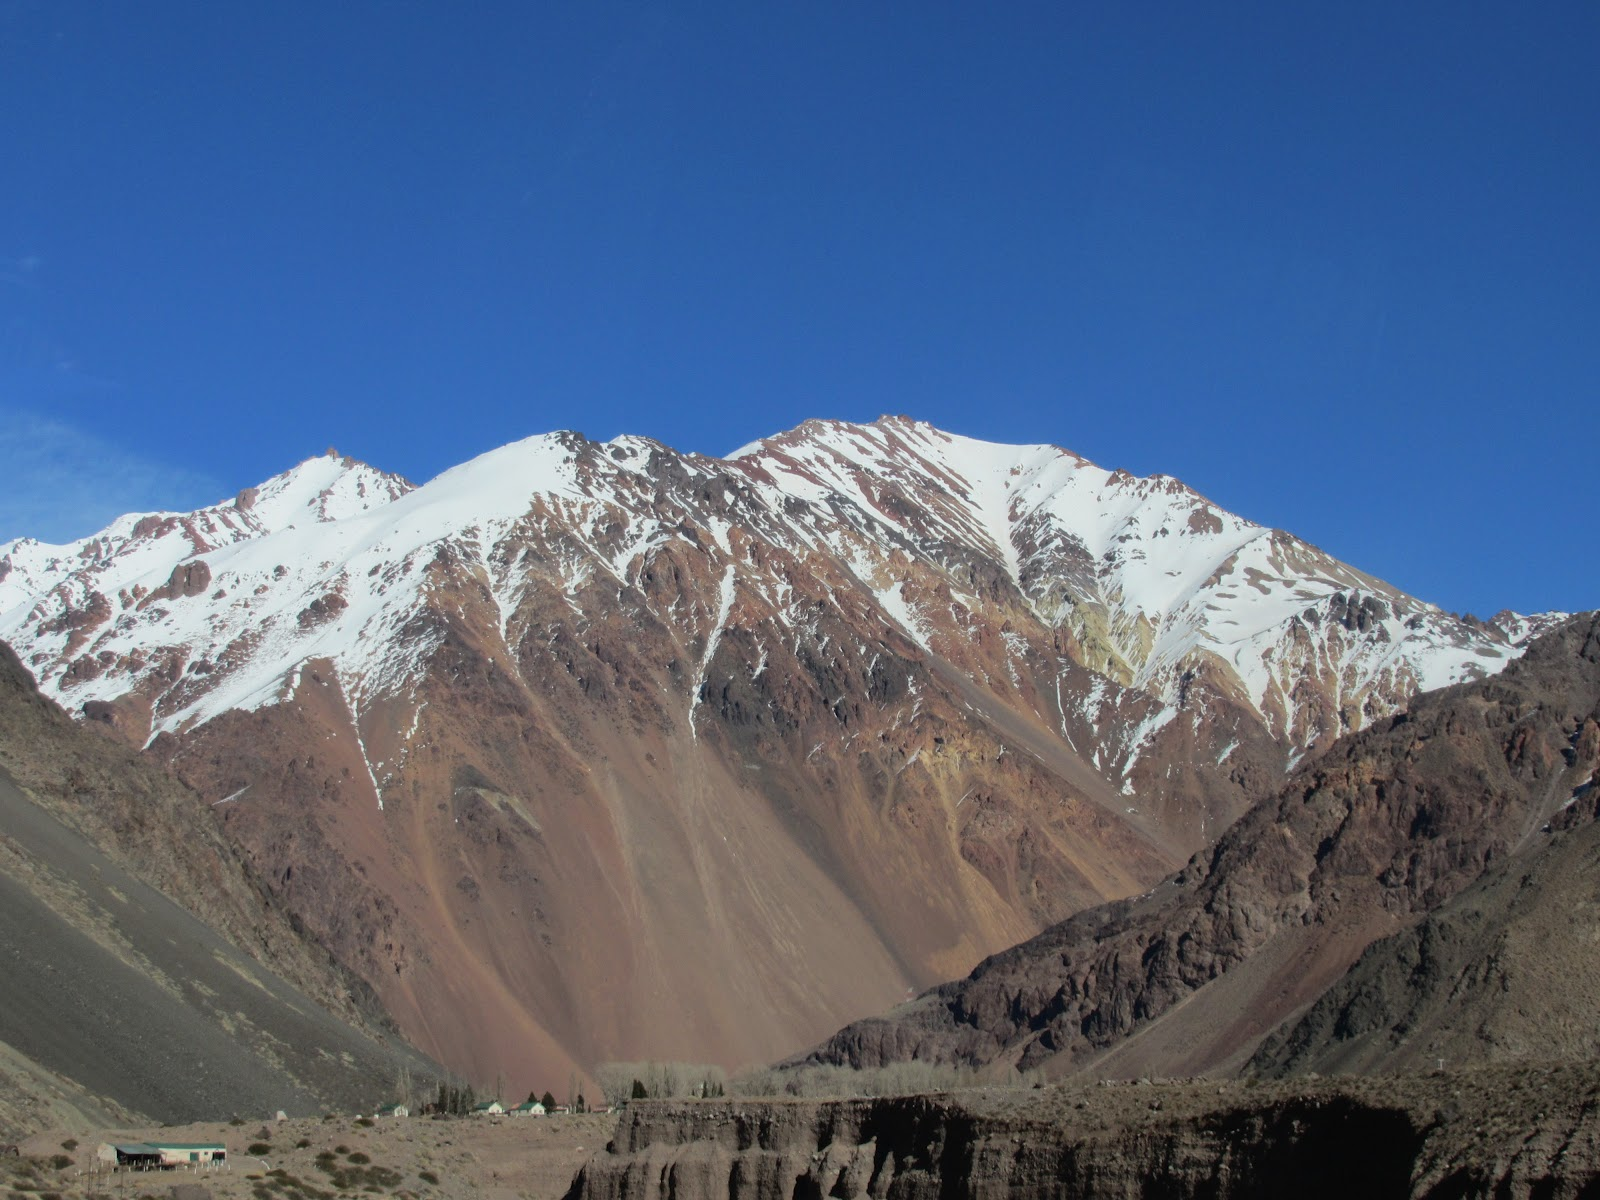 Argentina 2012: Andes Mountains